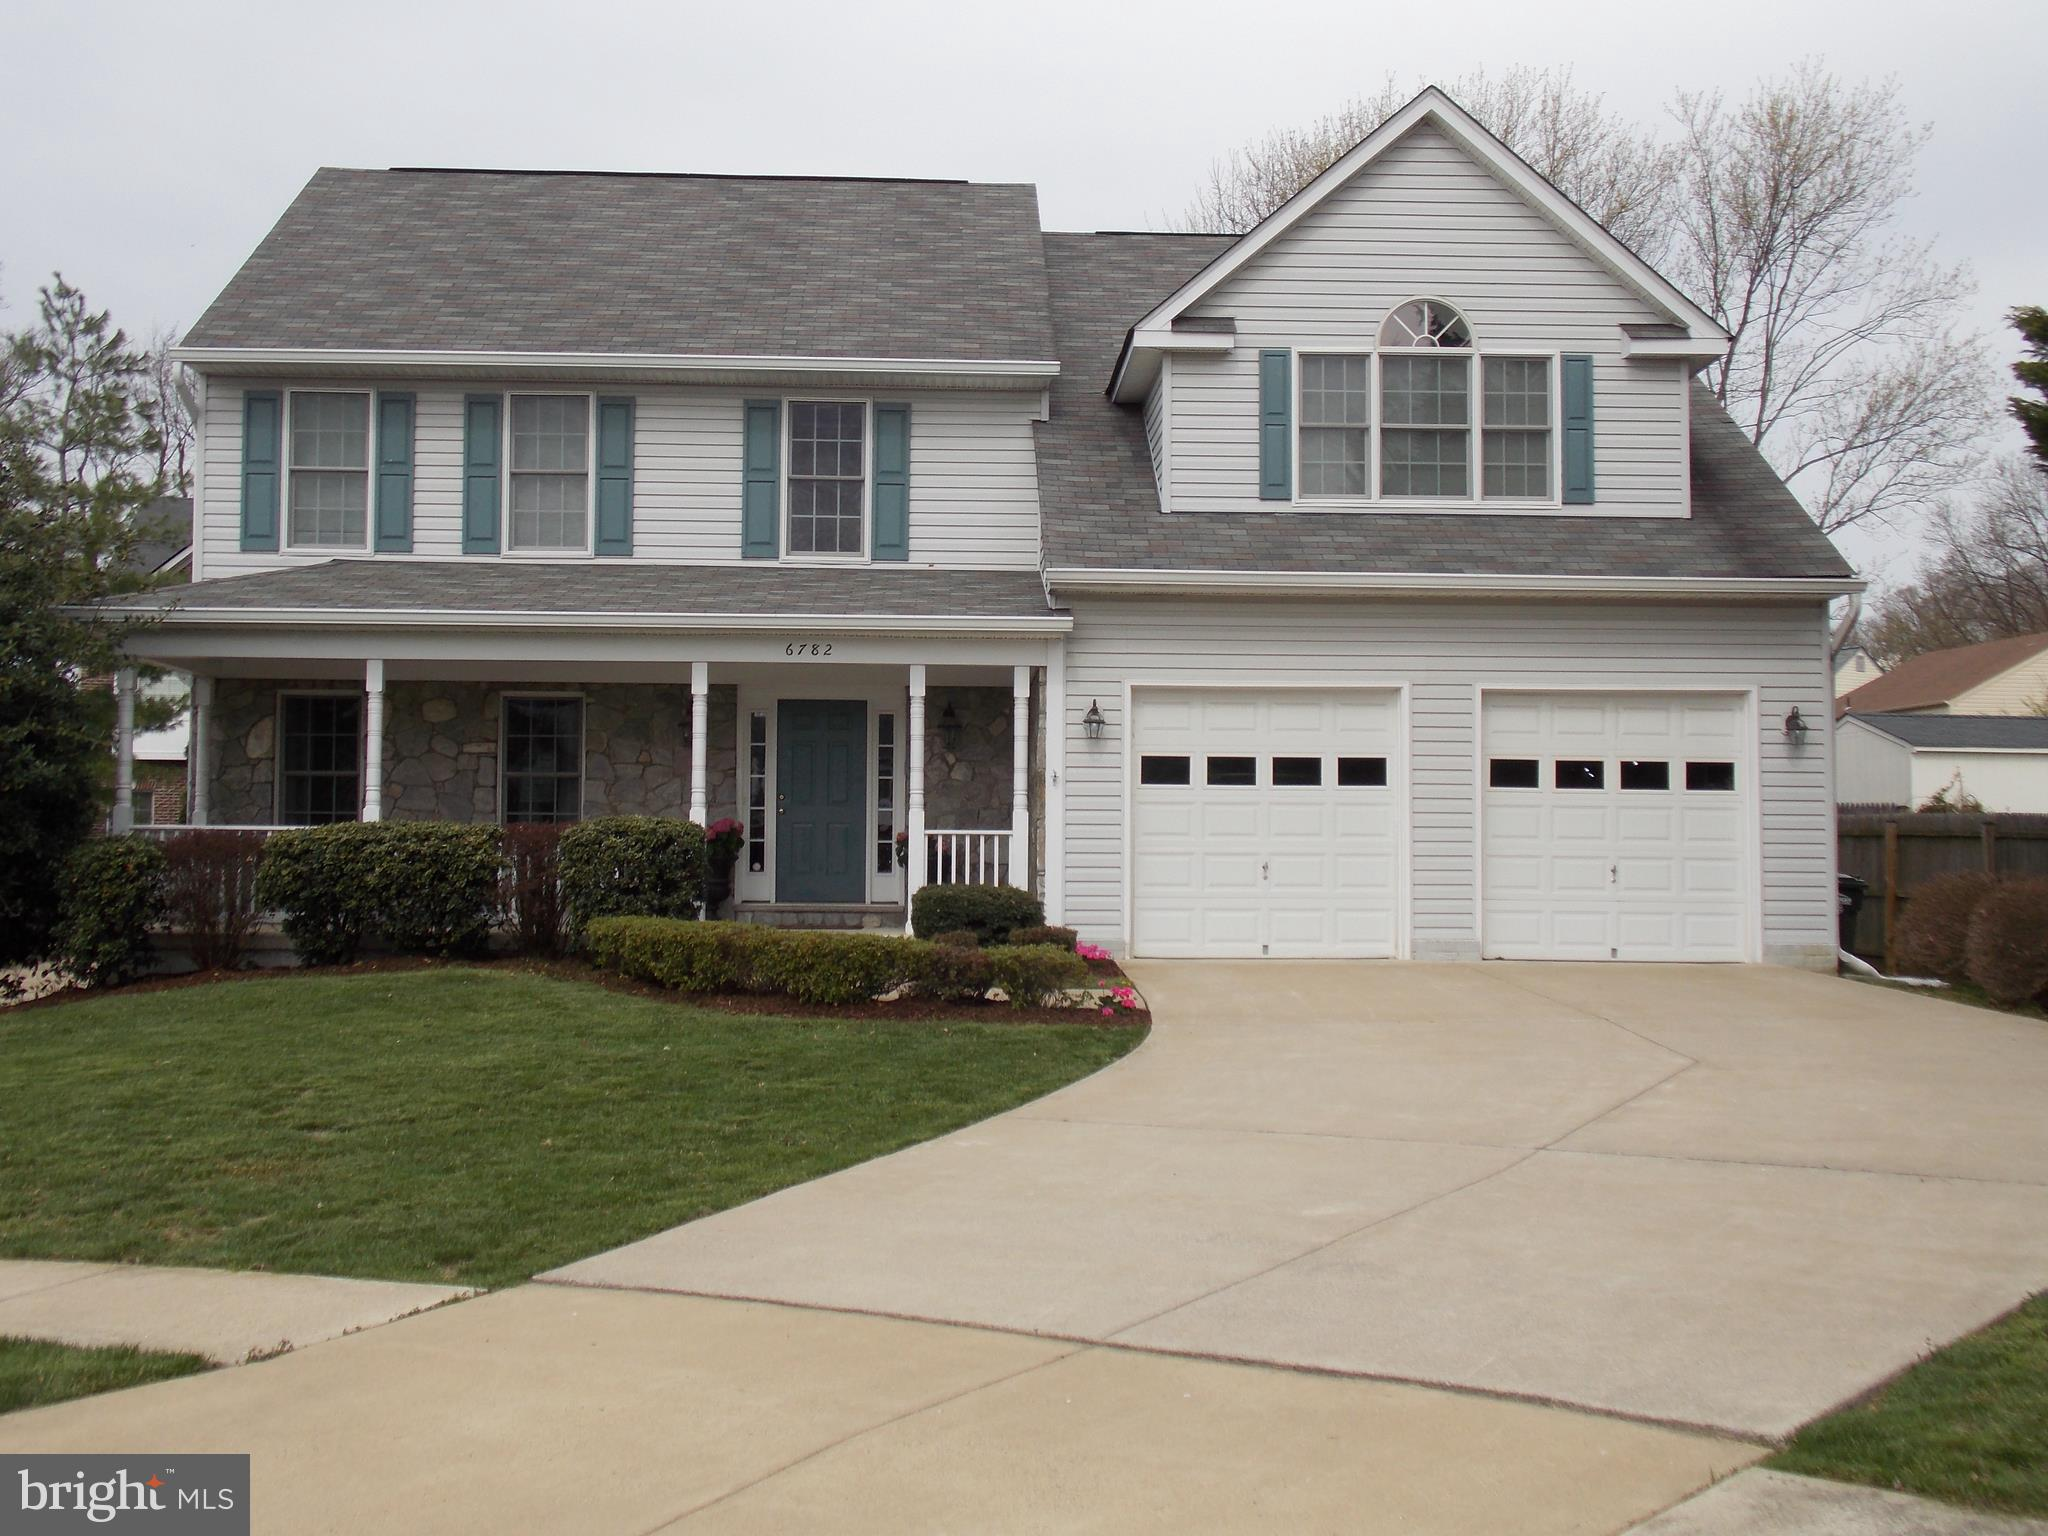 PLEASE NO PETS other than gold fish. No exceptions. Available July, possibly mid June! Large 3 level Colonial features 6 bedrooms and 3.5 baths, gas fireplace in the family room, recreation room on the lower level, large deck, master suite with attached bath and jetted tub, walk in closet, cathedral ceiling. Two car garage. Large partially fenced yard. Hayfield school district. This home has been meticulously maintained and offers plenty of space for a growing family. Currently tenant occupied. Please call for a showing appointment and allow for a 24 hour notice.Please note: Photos are accurate, but all appliances in kitchen are now stainless steel.